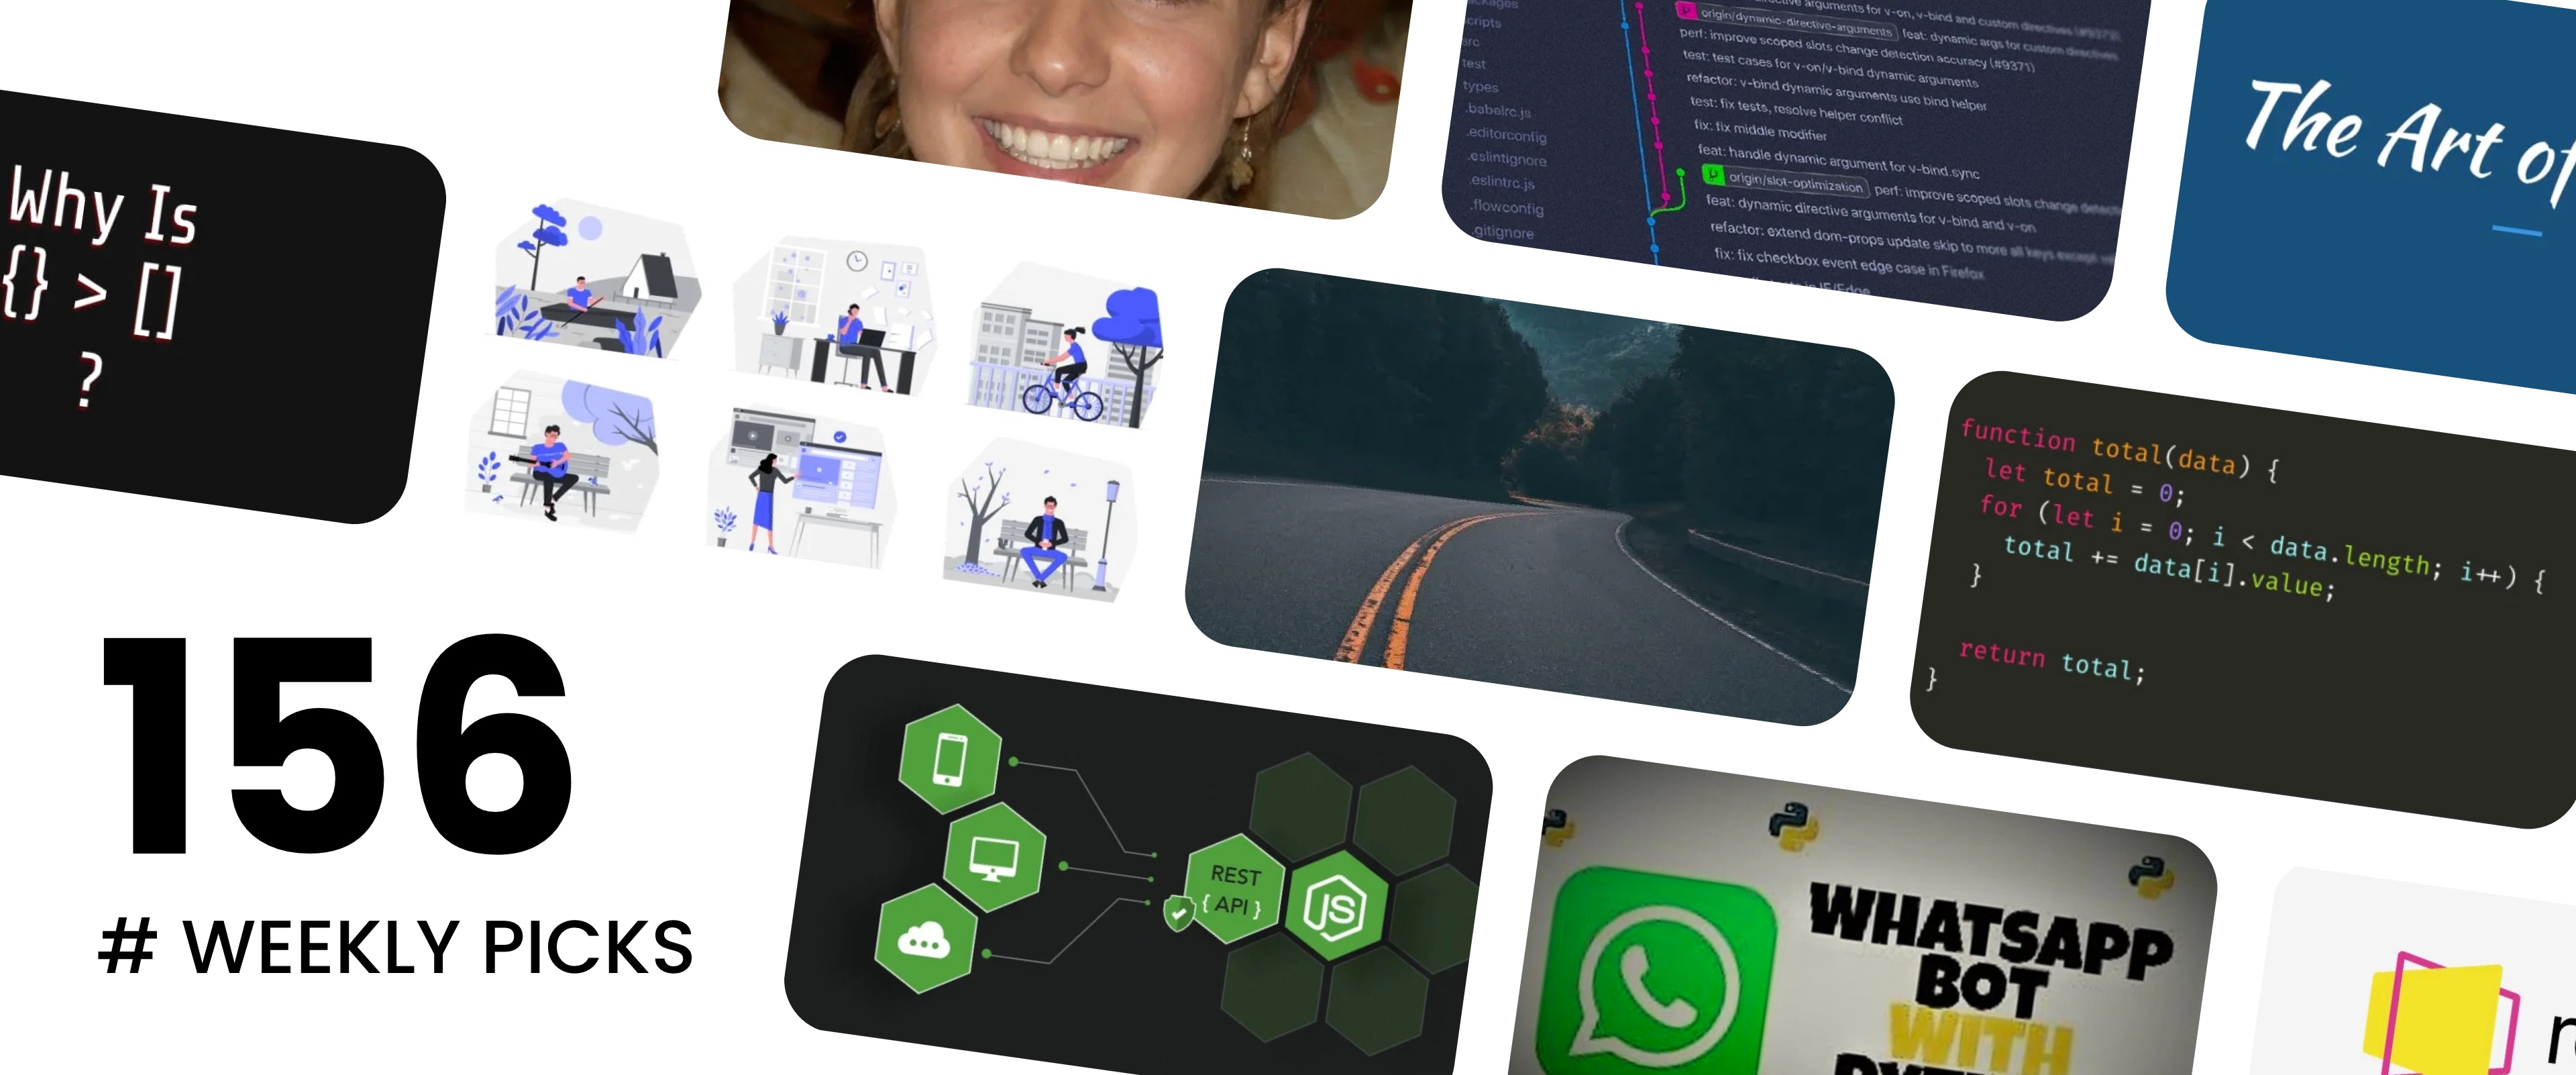 🔥 What's Hot in Web Development? — Weekly Picks #156